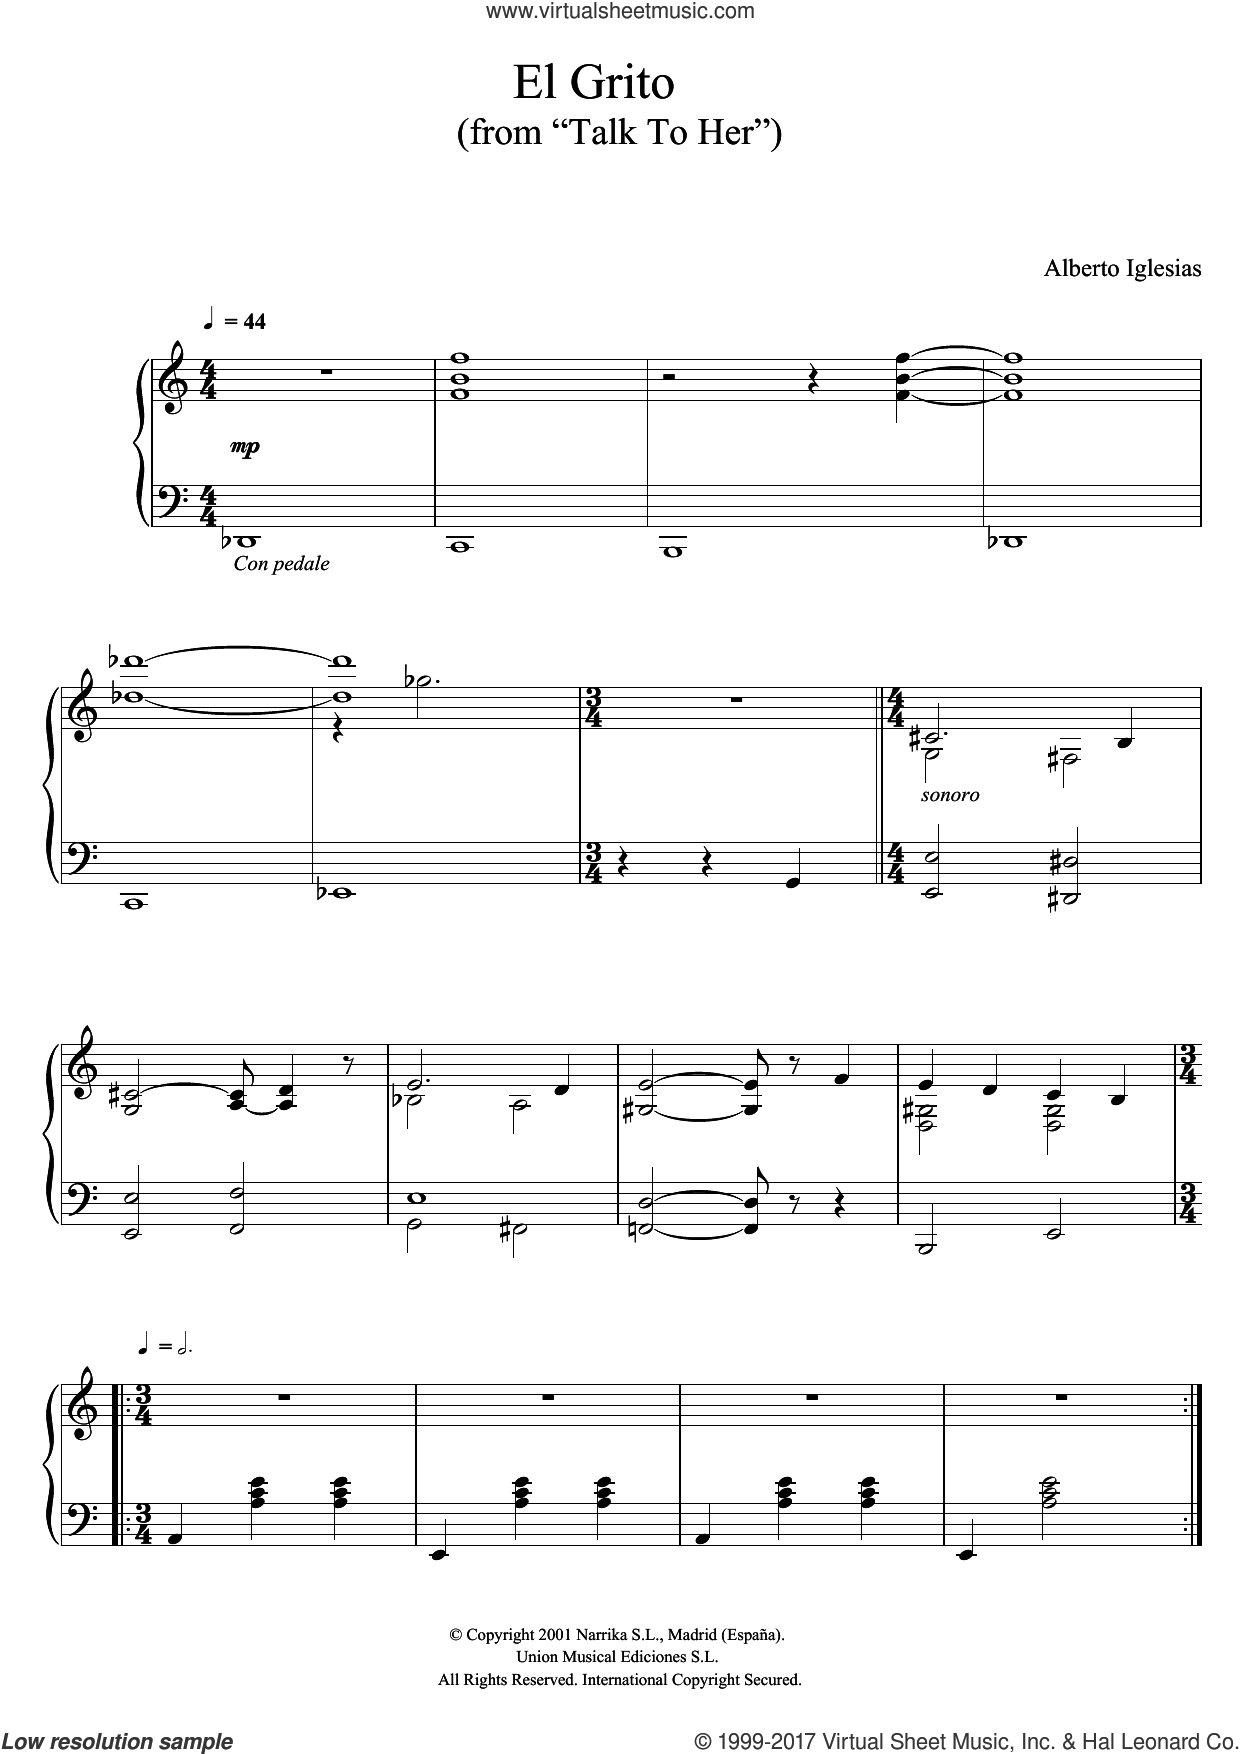 El Grito (from 'Talk To Her') sheet music for piano solo by Alberto Iglesias, intermediate skill level